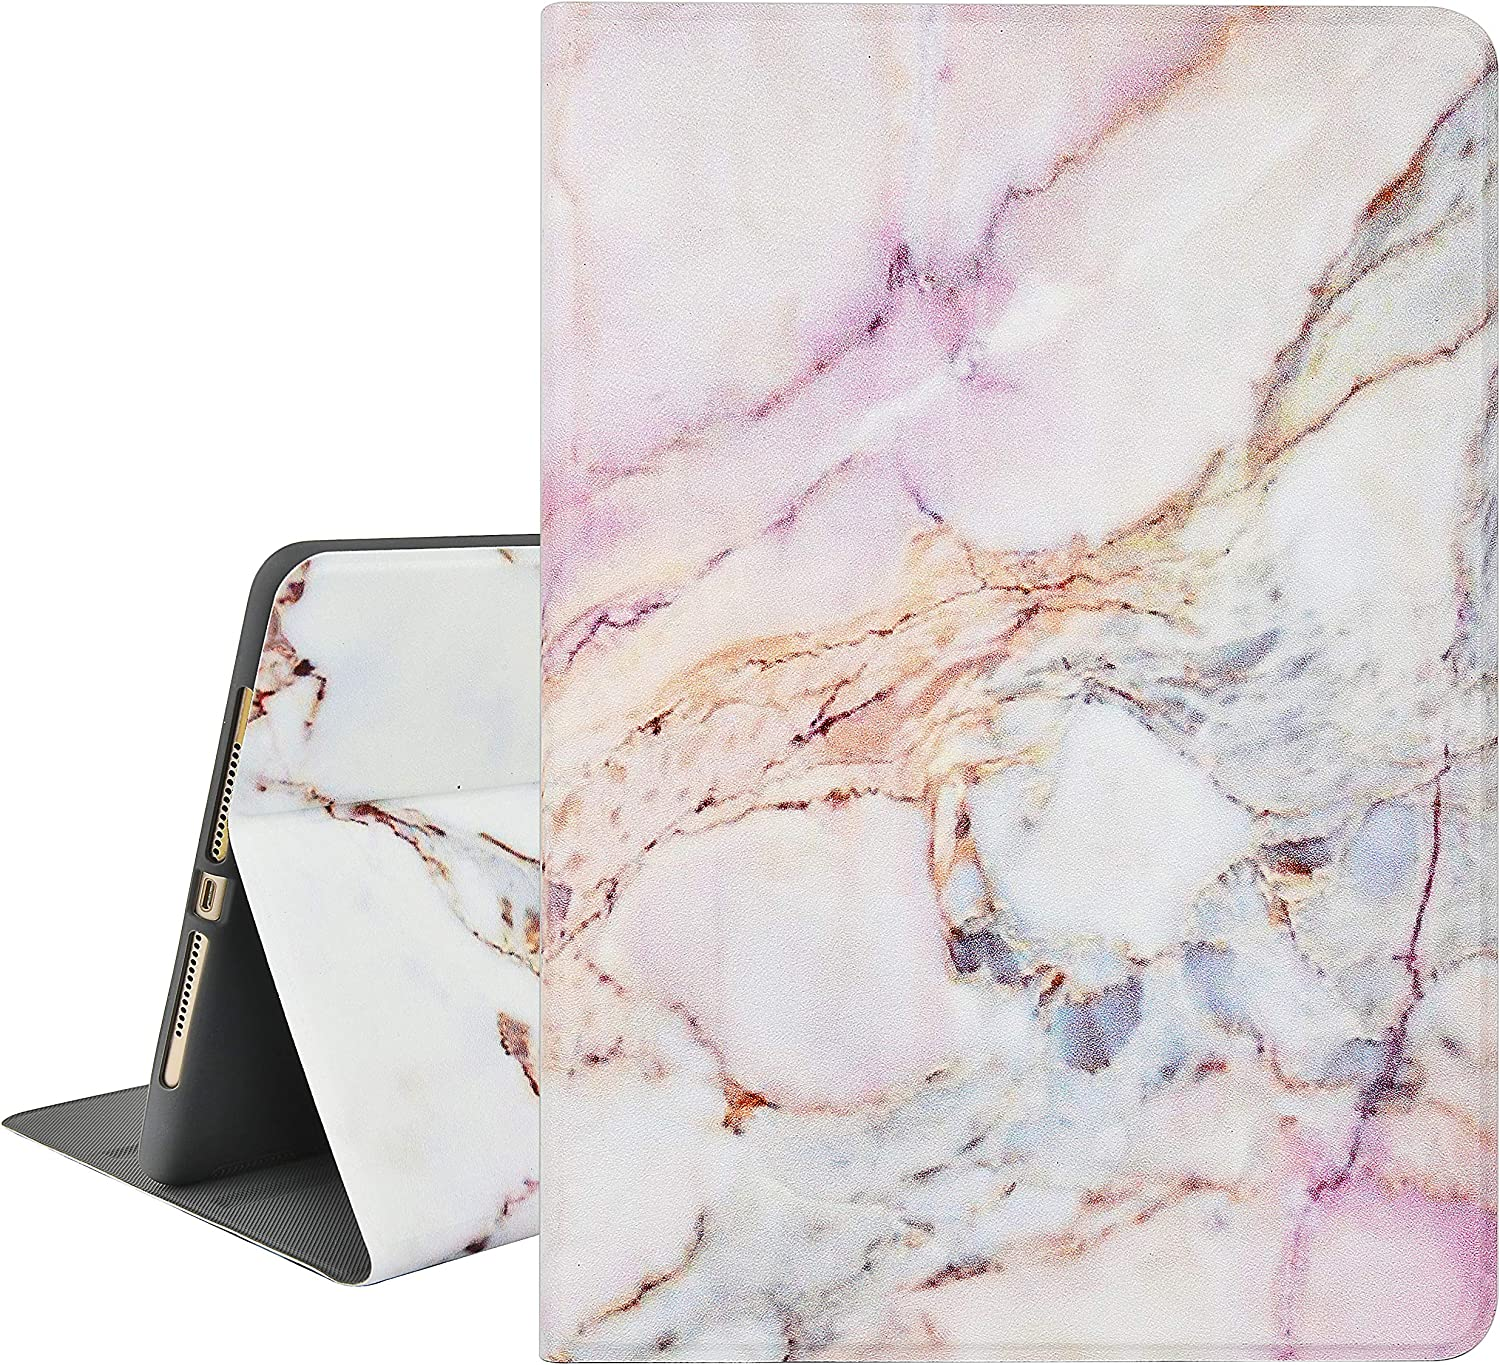 """KECC Case for iPad Air 3rd Gen. 10.5"""" (2019) / iPad Pro 10.5"""" (2017) Smart Protective Cover Multiple Viewing Angles + Auto Sleep/Wake Function (White Marble 4)"""